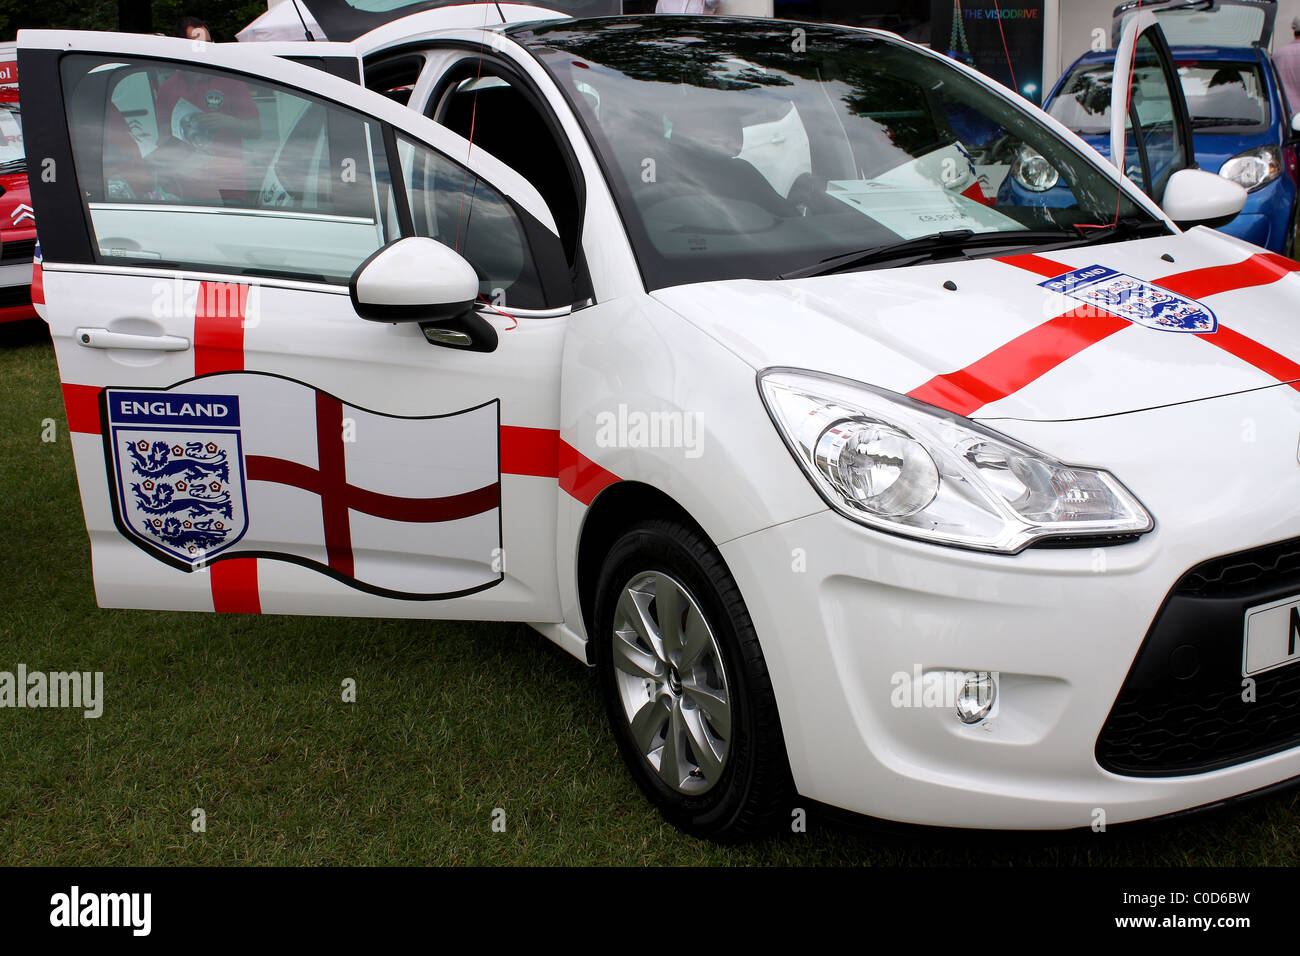 A Ford Fiesta At A Car Show Event Displaying The Logo And Symbol Of